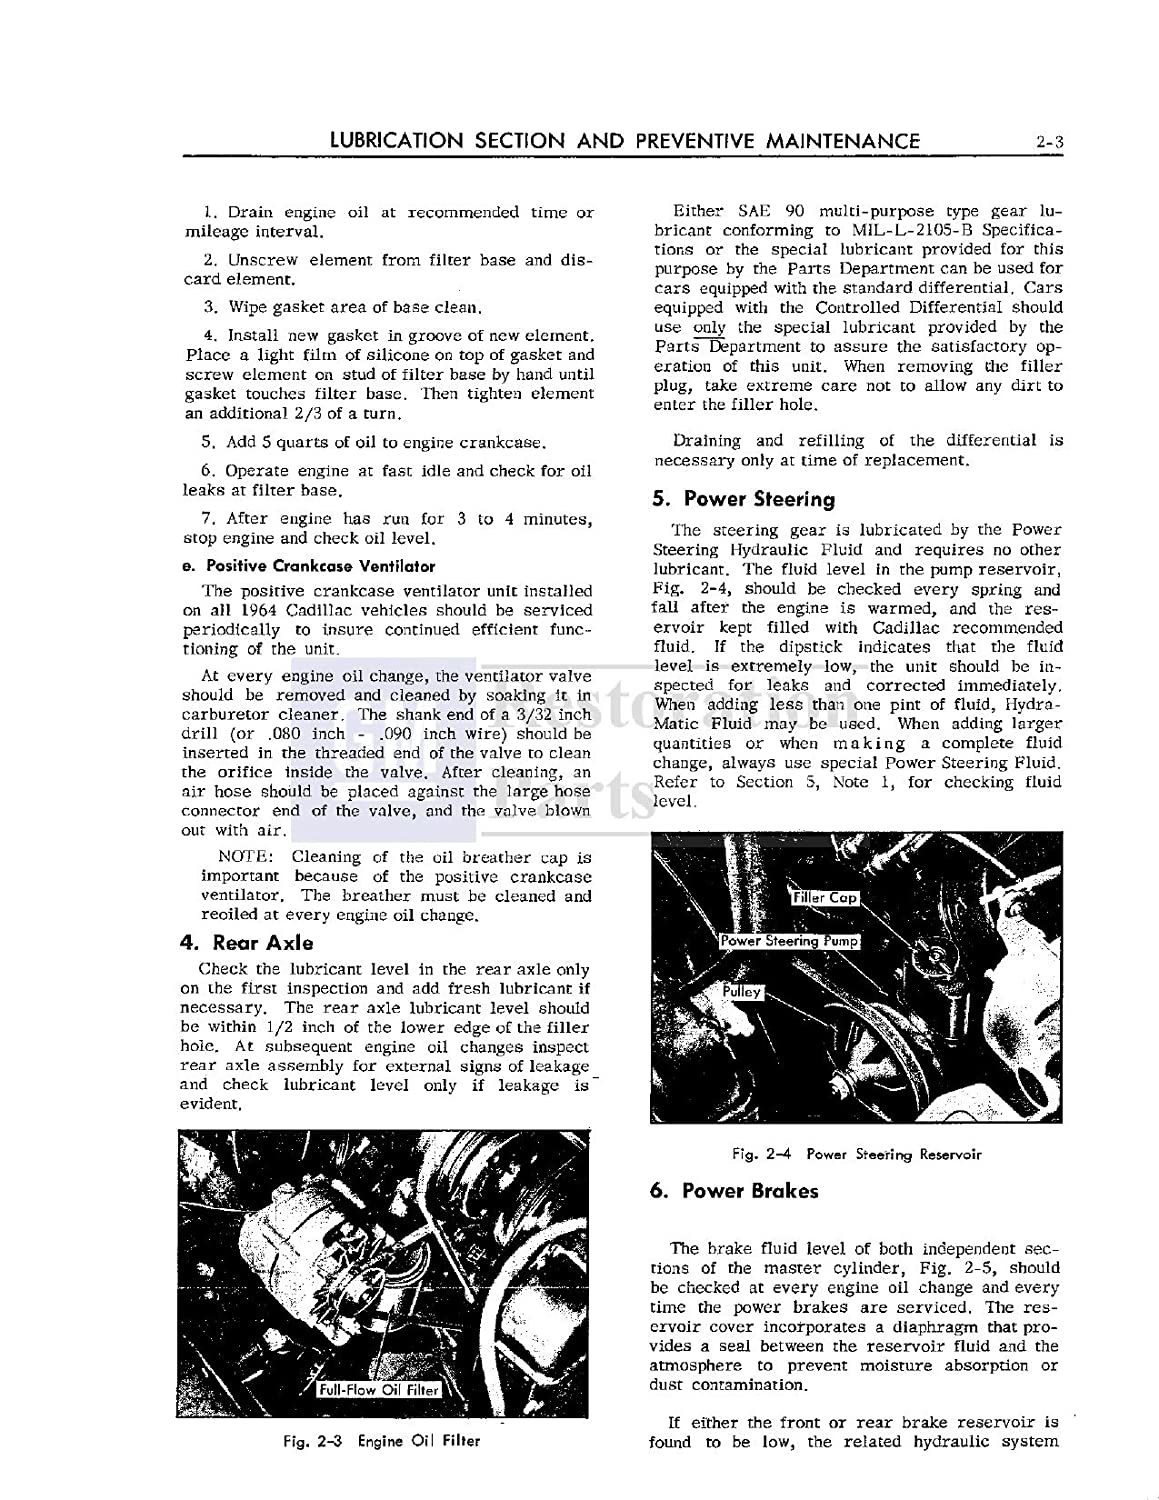 1964 Cadillac Shop Service Repair Manual Book Engine Wiring Diagram For 60 And 62 Series Part 1 Electrical Drivetrain Automotive